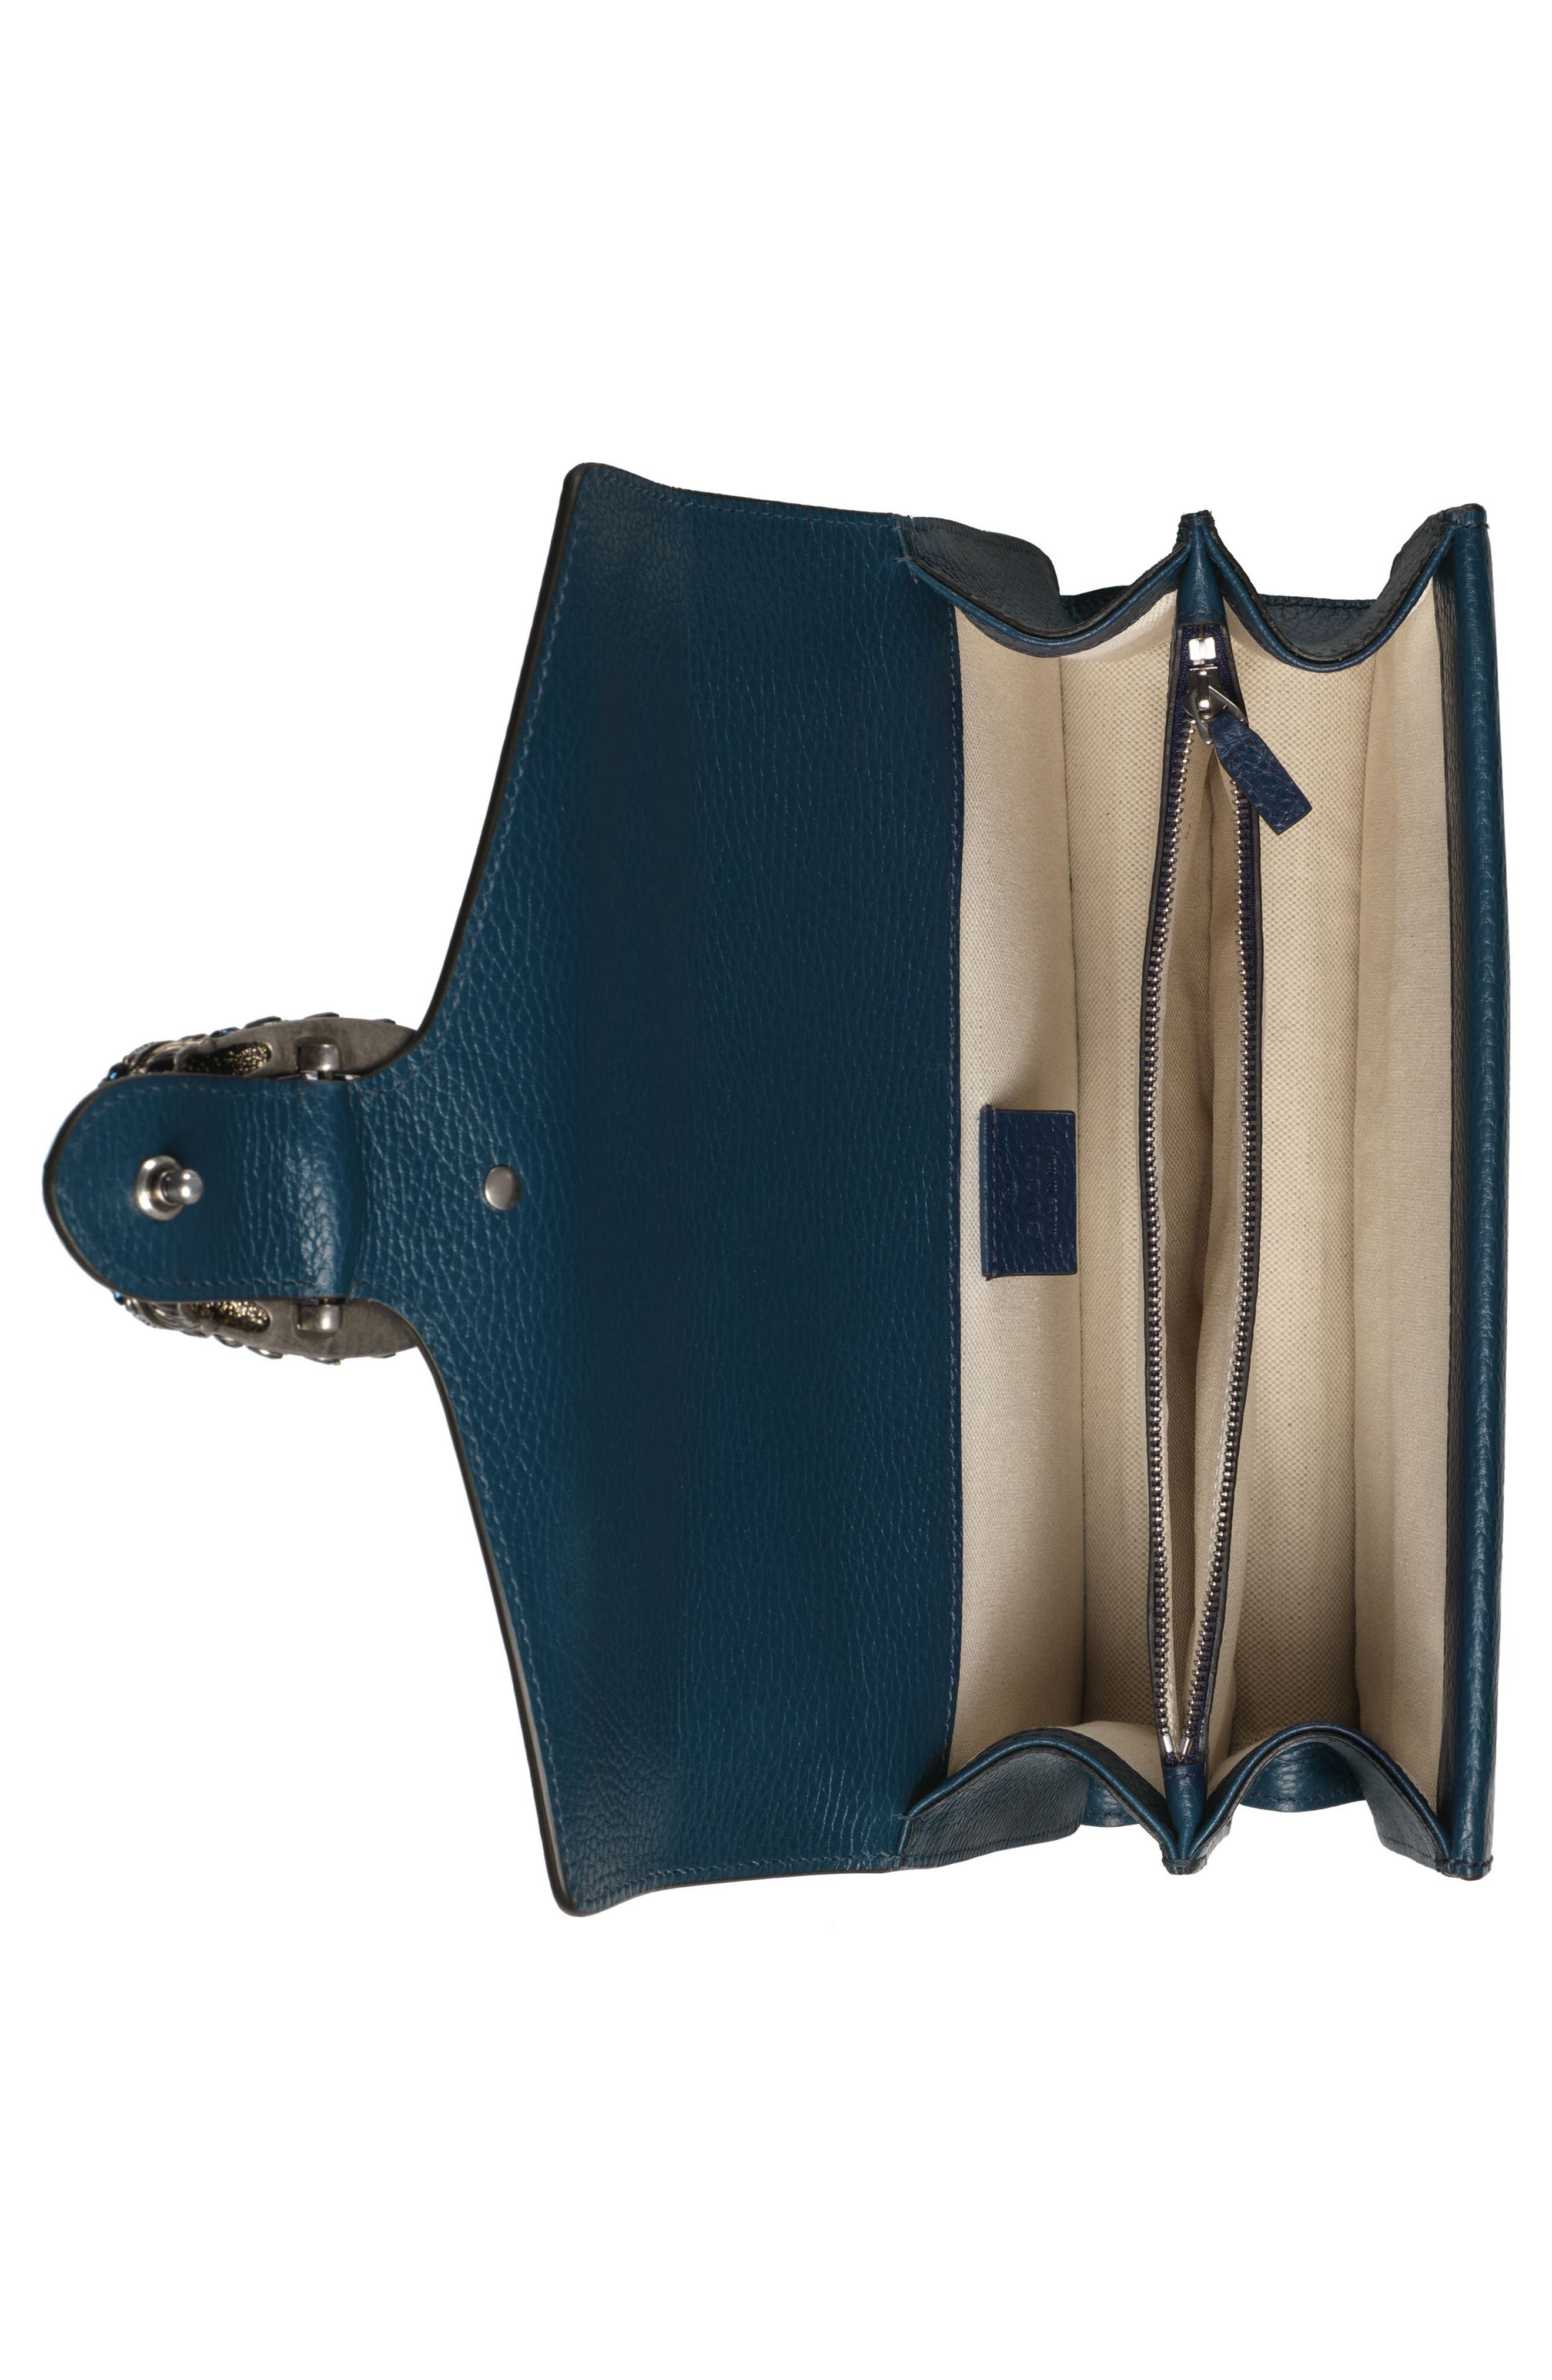 Small Dionysus Leather Shoulder Bag,                             Alternate thumbnail 3, color,                             BLU AGATA/ MONTANA